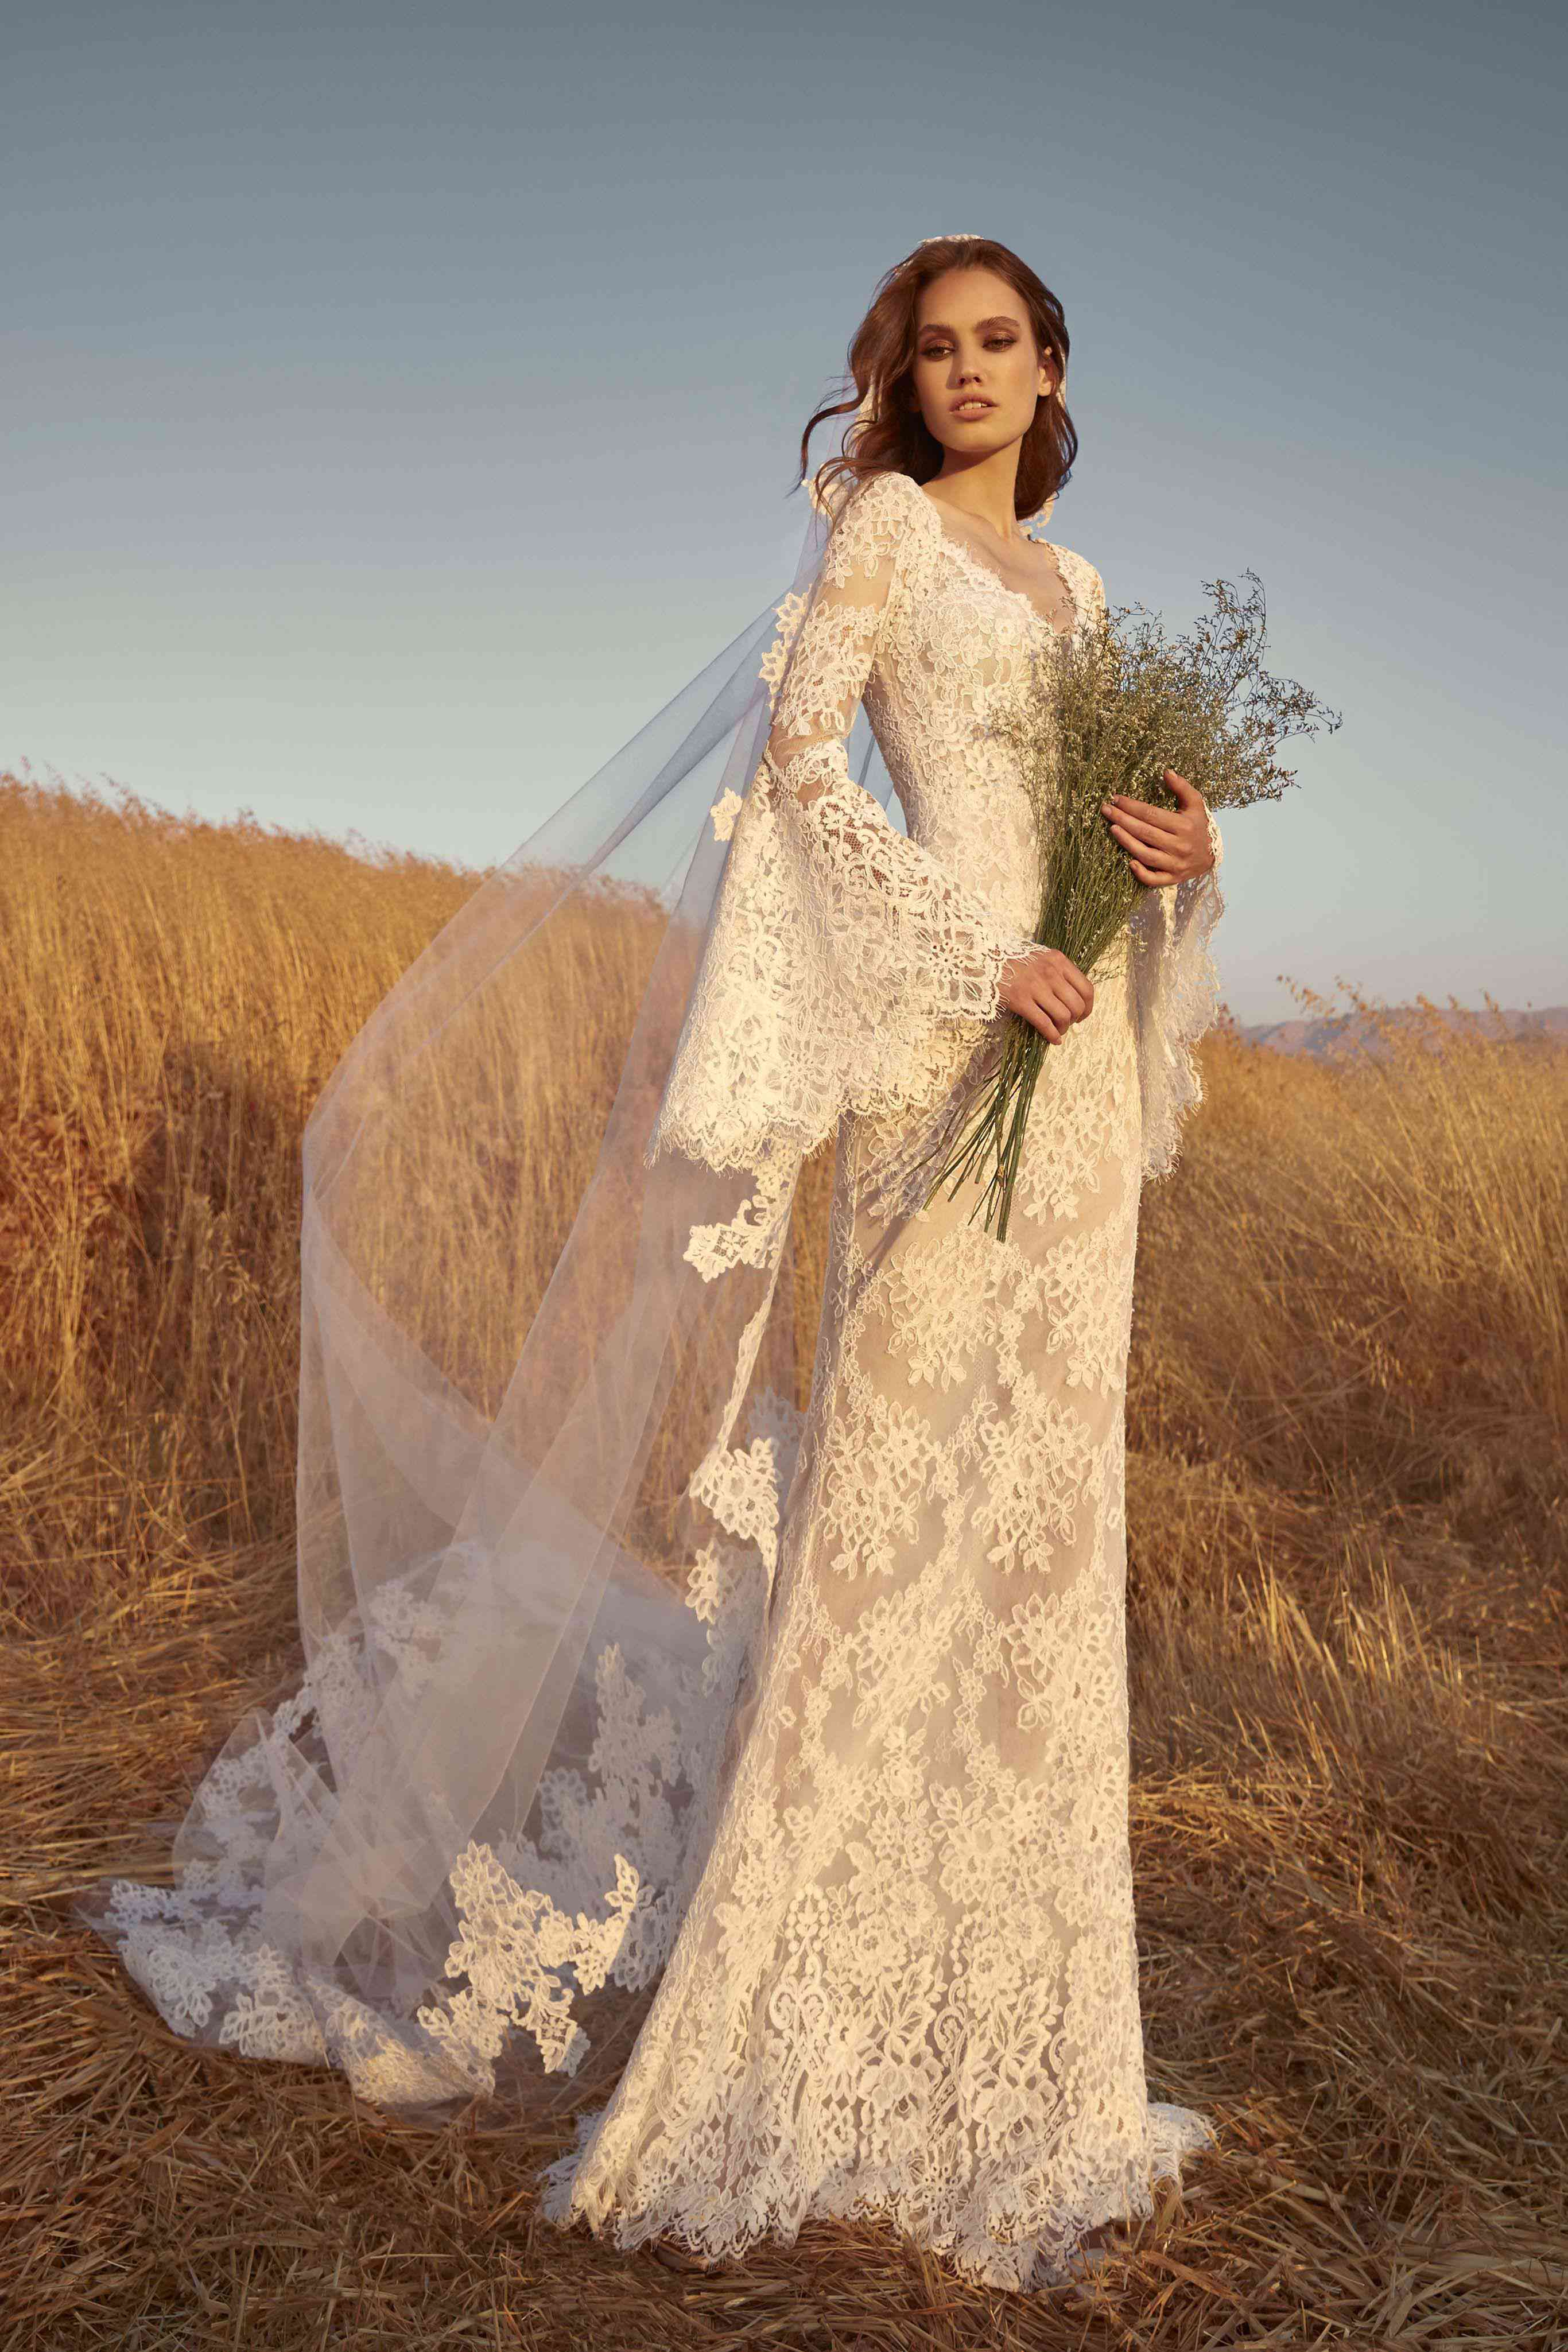 Model in an allover lace sheath gown with long bell sleeves